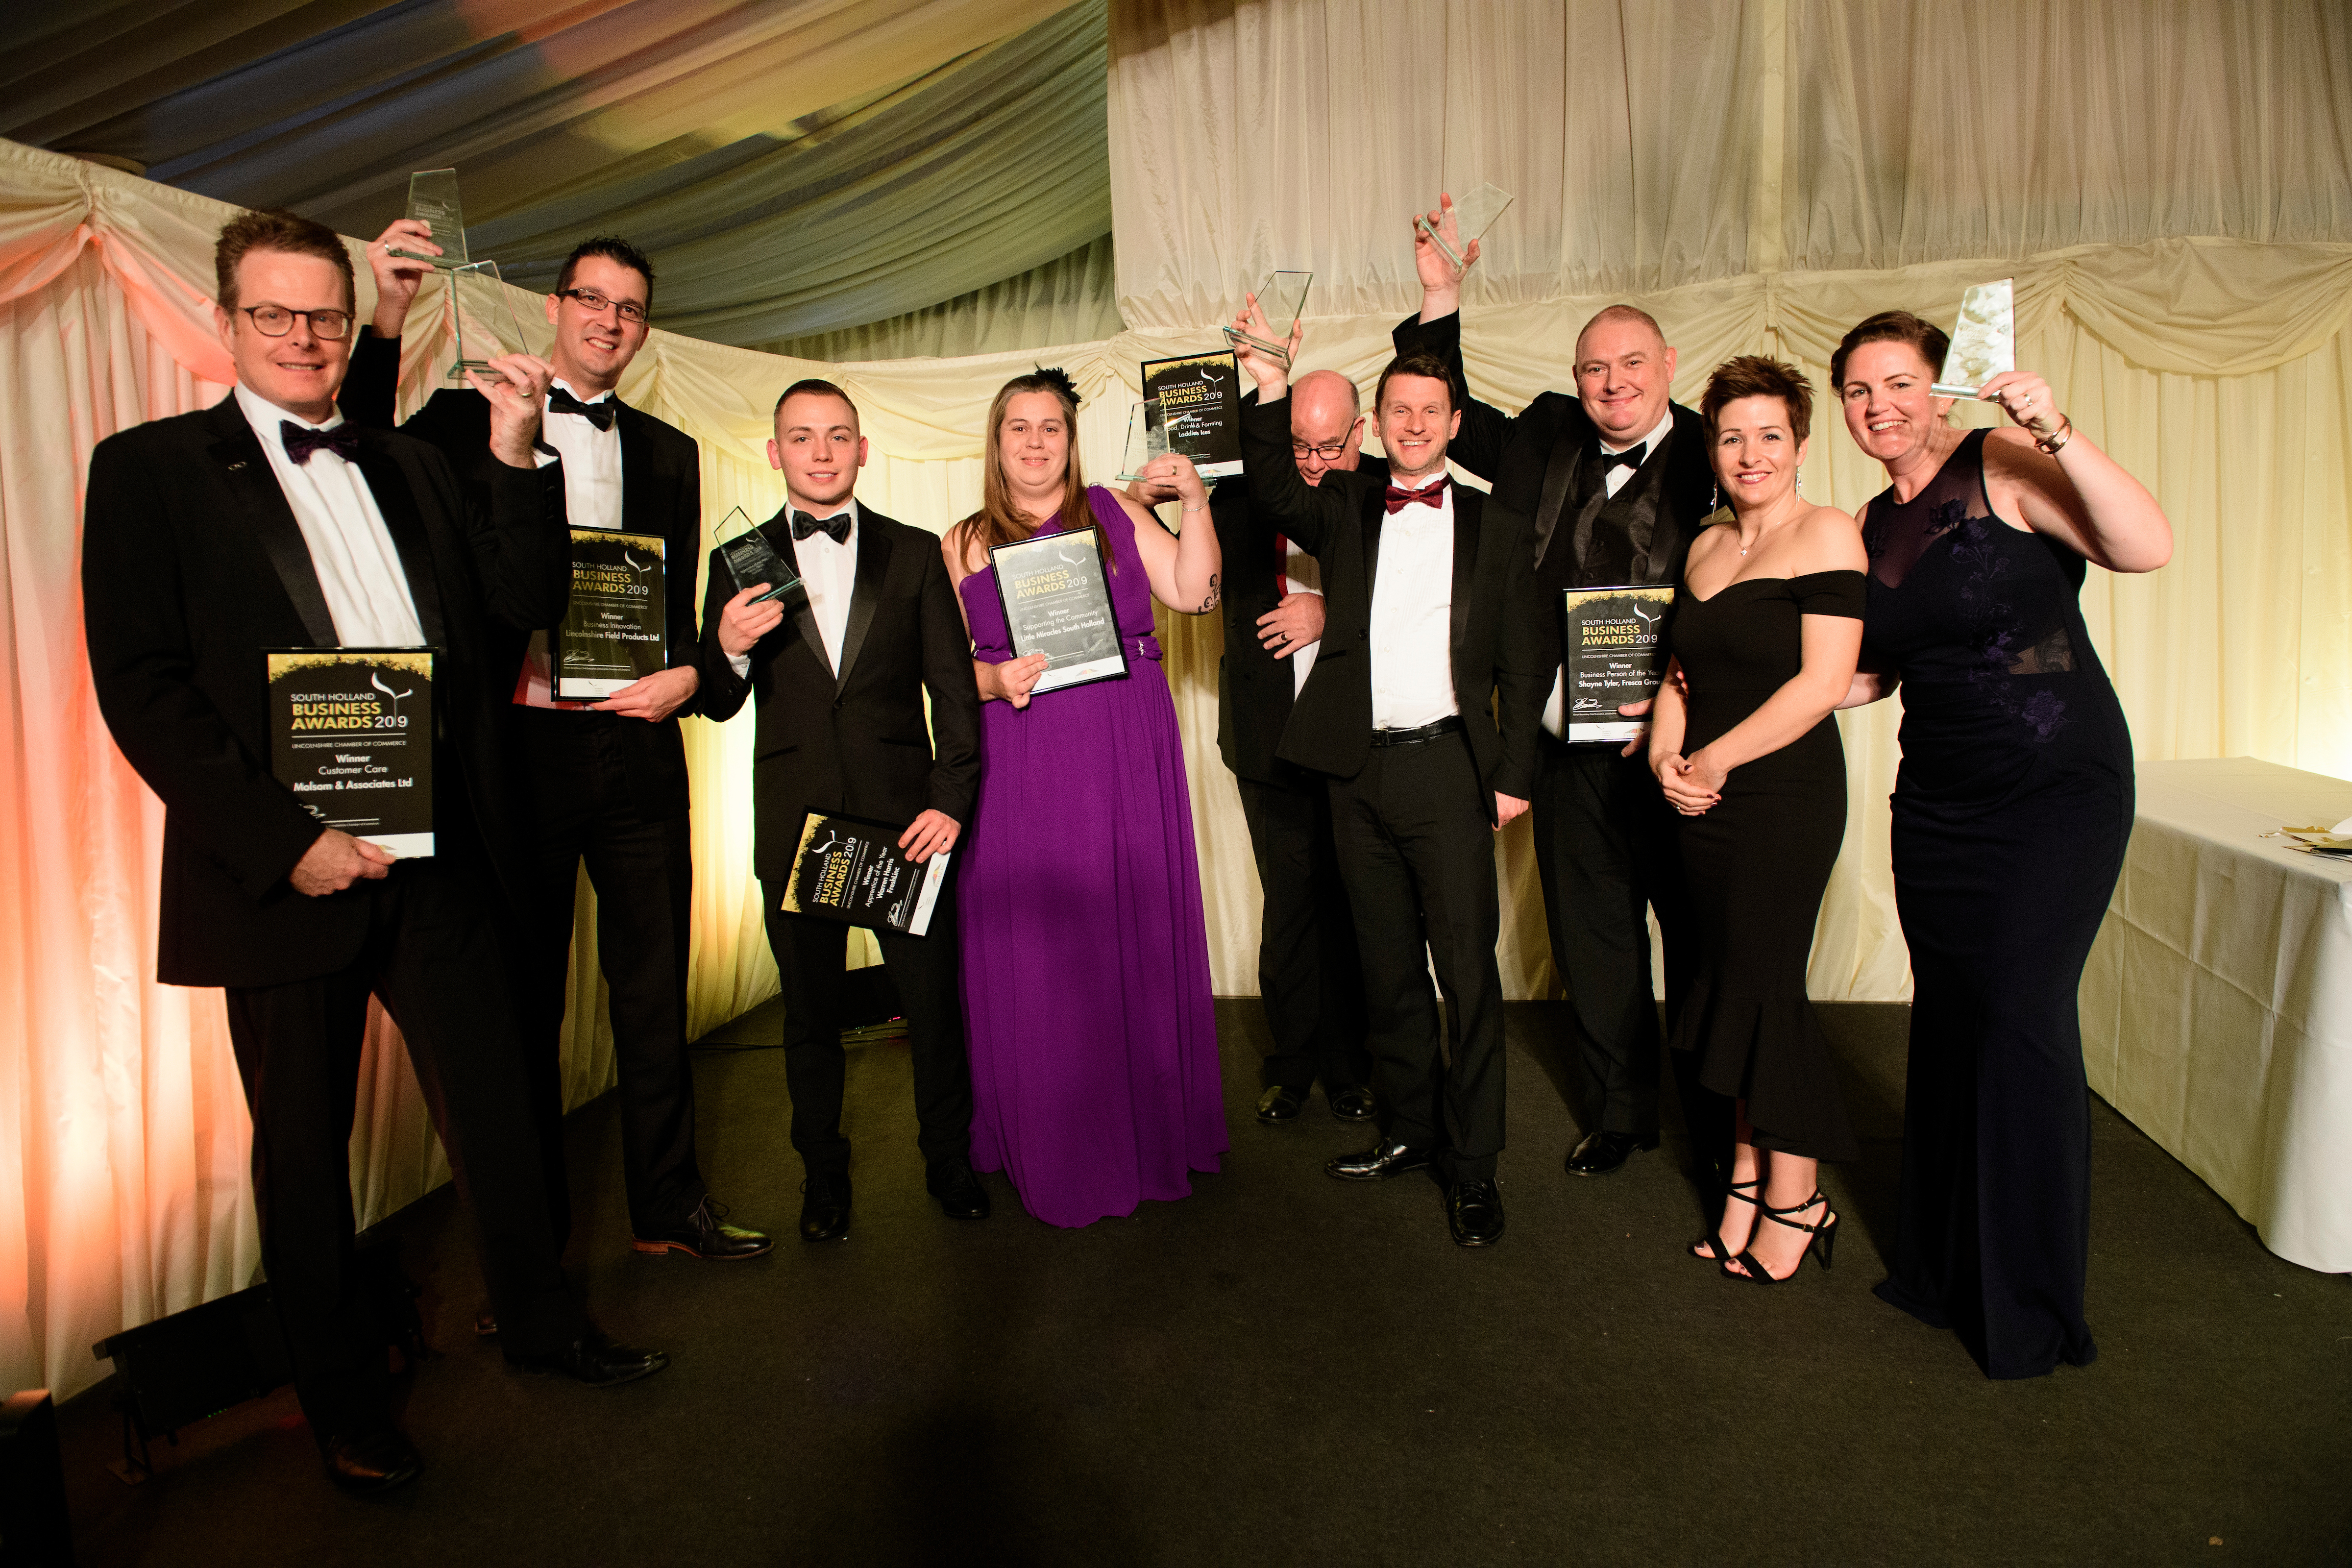 Group of people in eveningwear holding framed certificates, trophies, posing and smiling at the South Holland Business Awards 2019